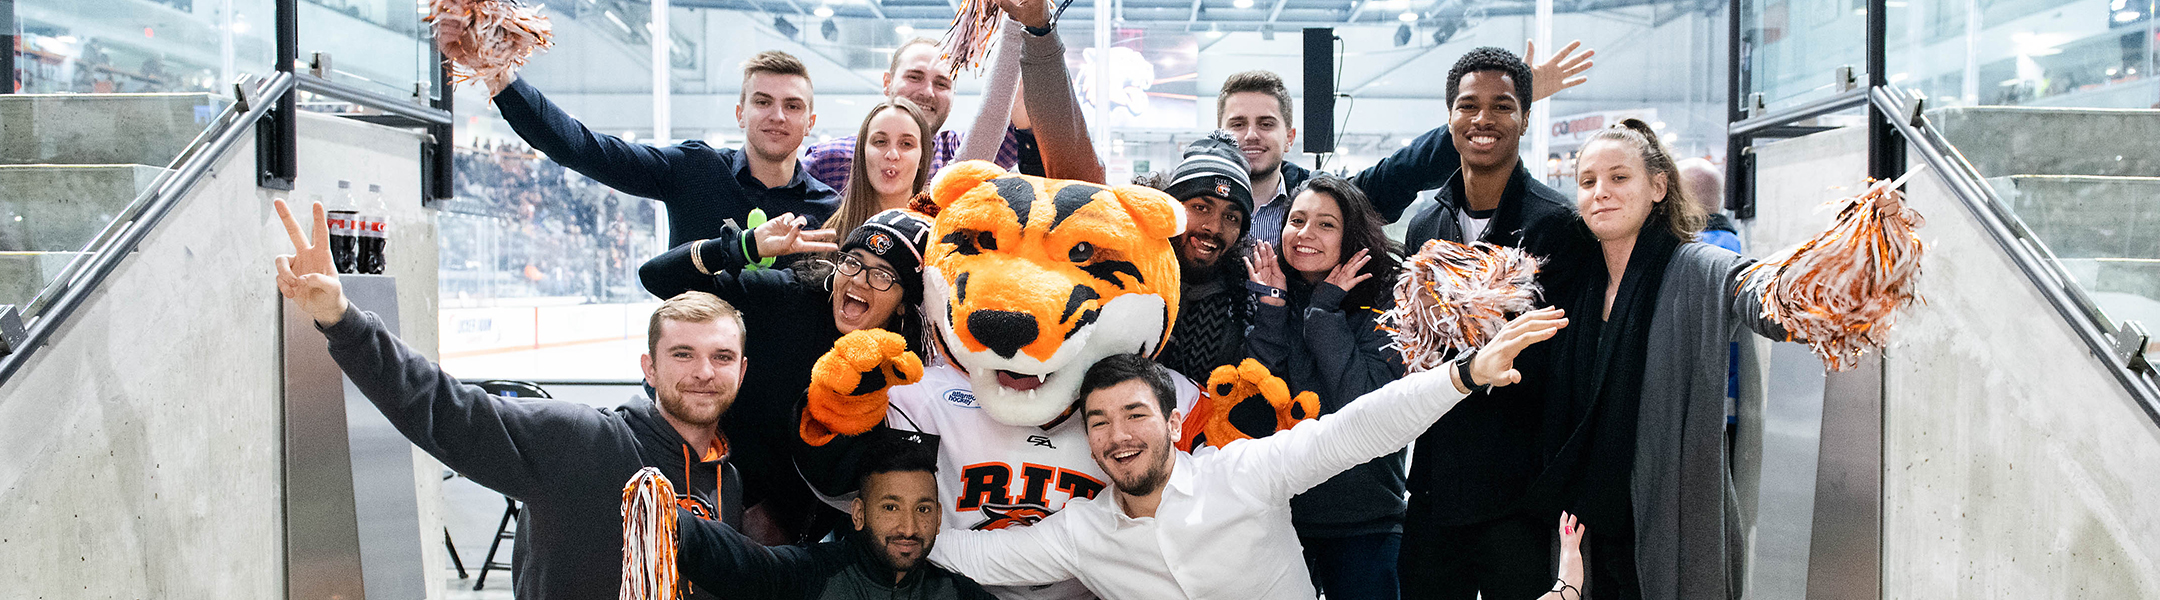 Students posing for a photograph outside of the RIT hockey arena